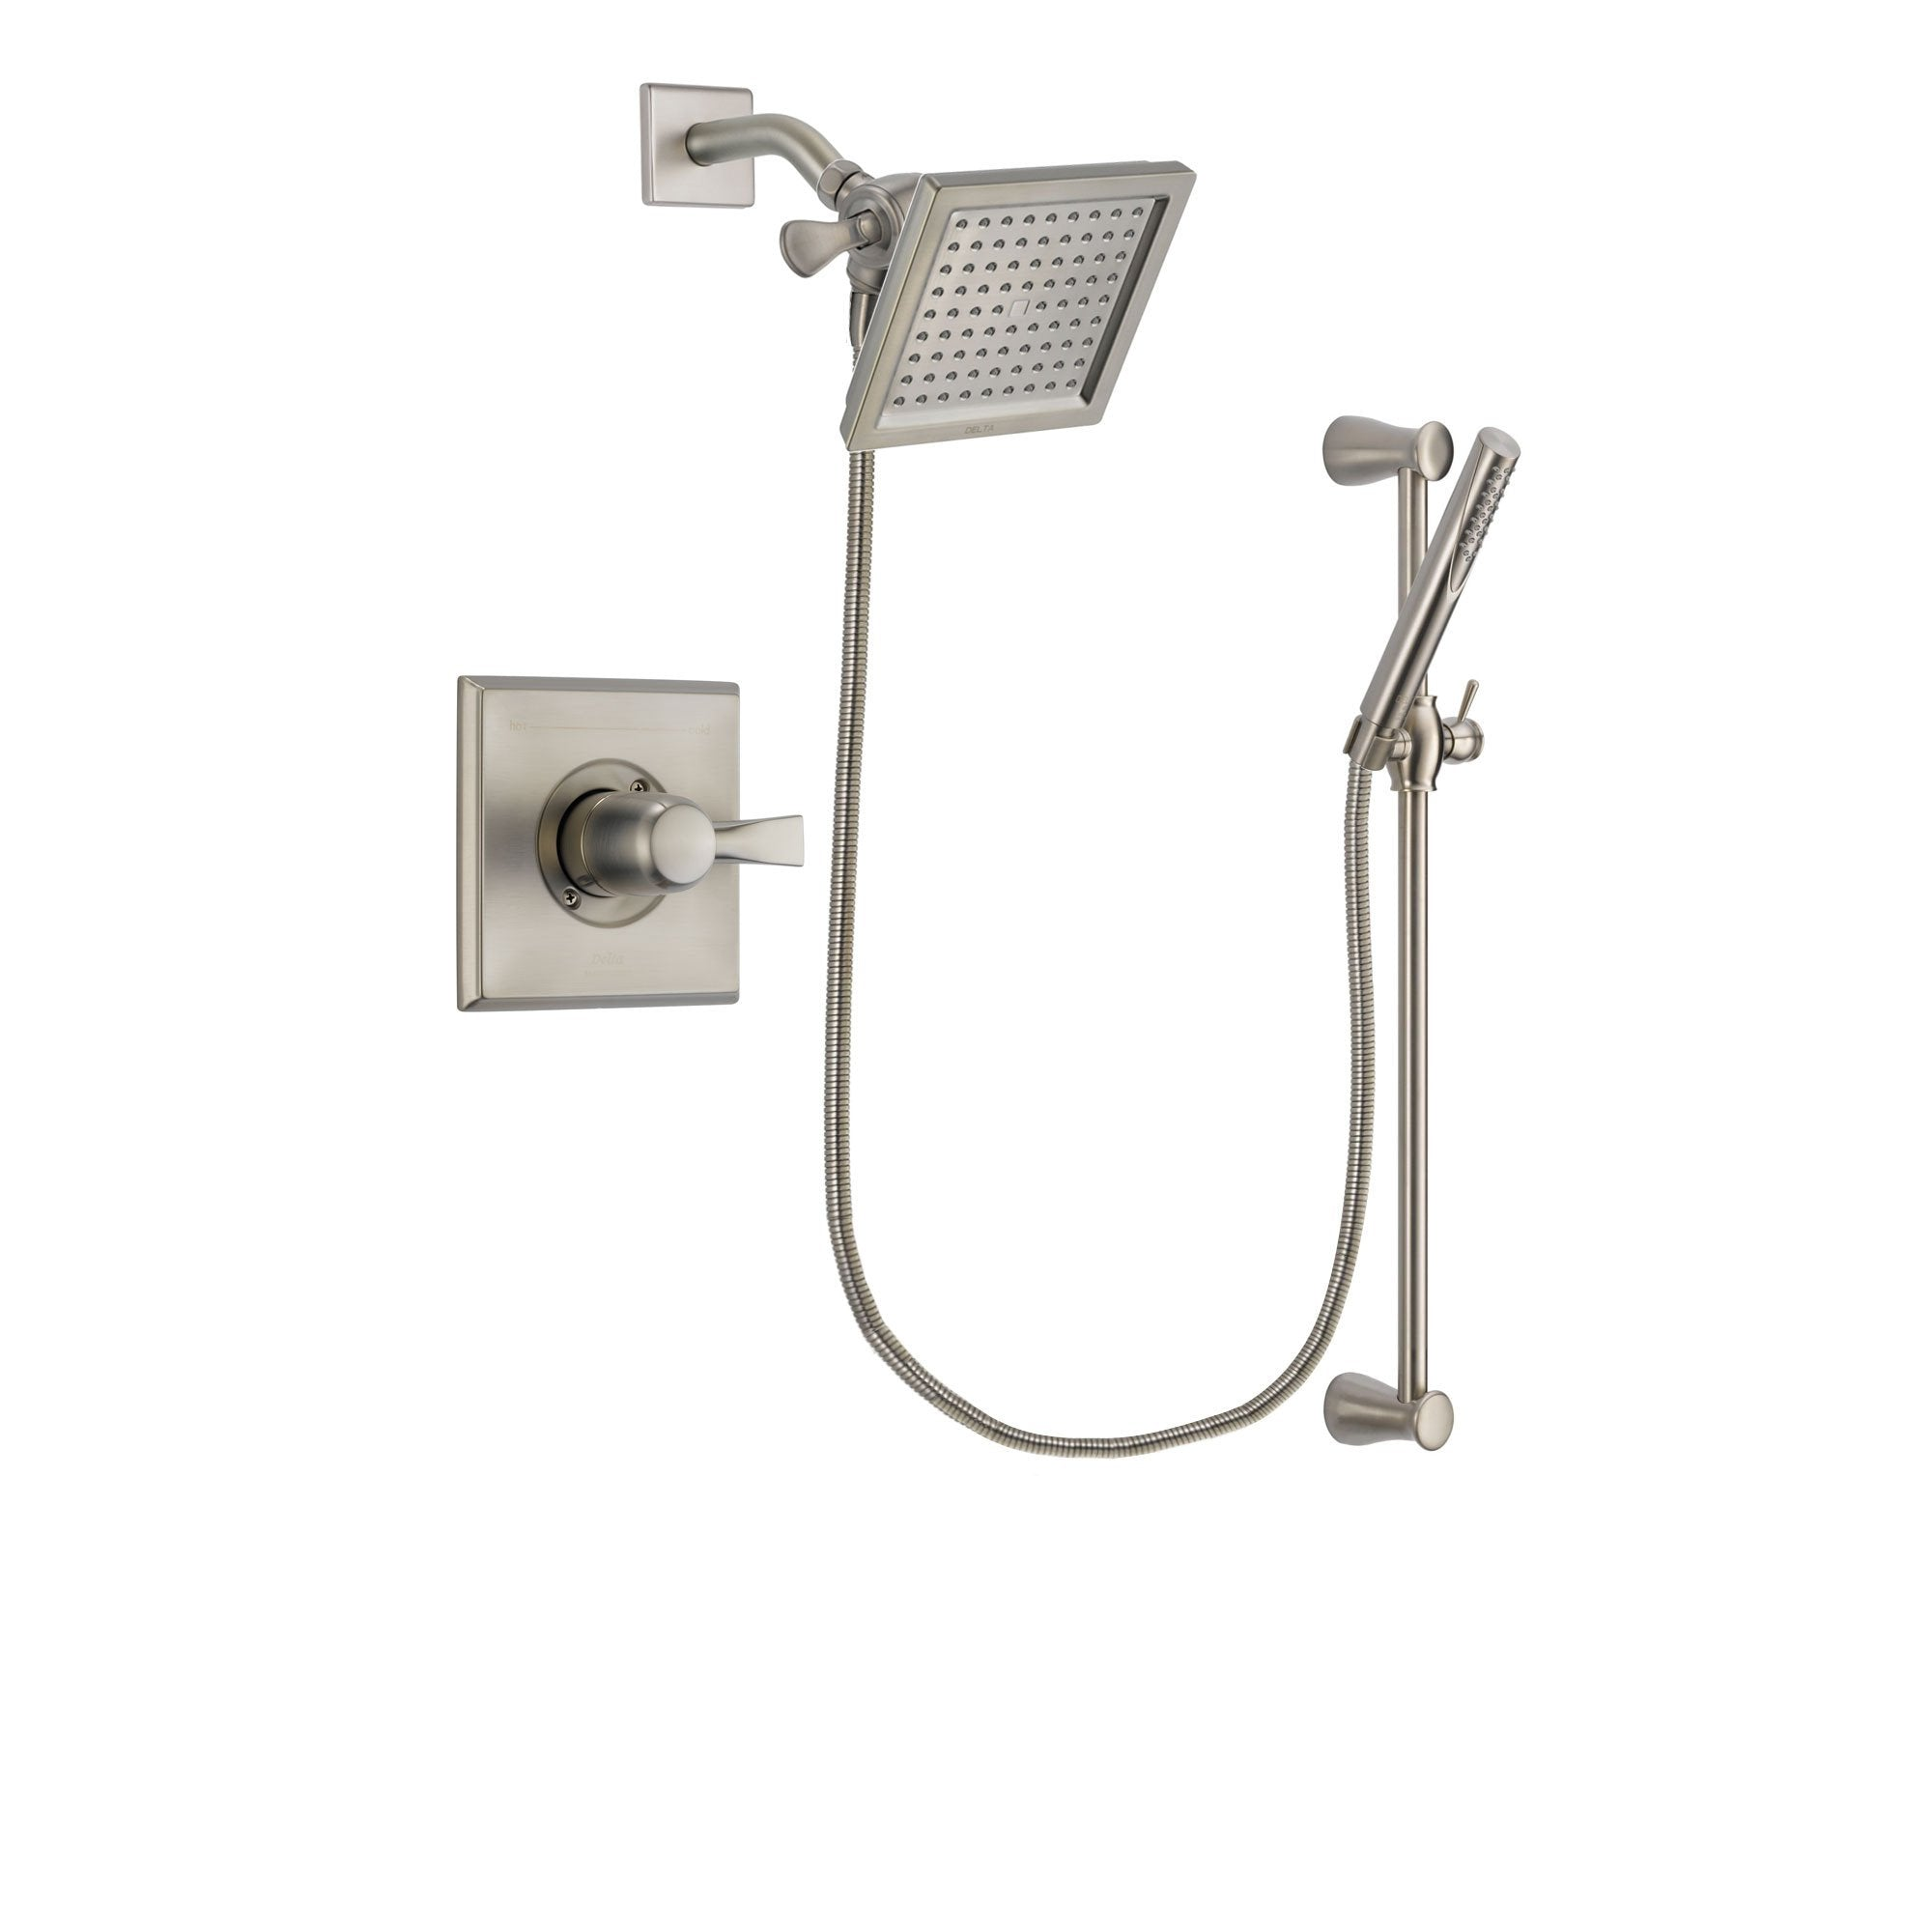 Delta Dryden Stainless Steel Finish Shower Faucet System w/ Hand Spray DSP2298V